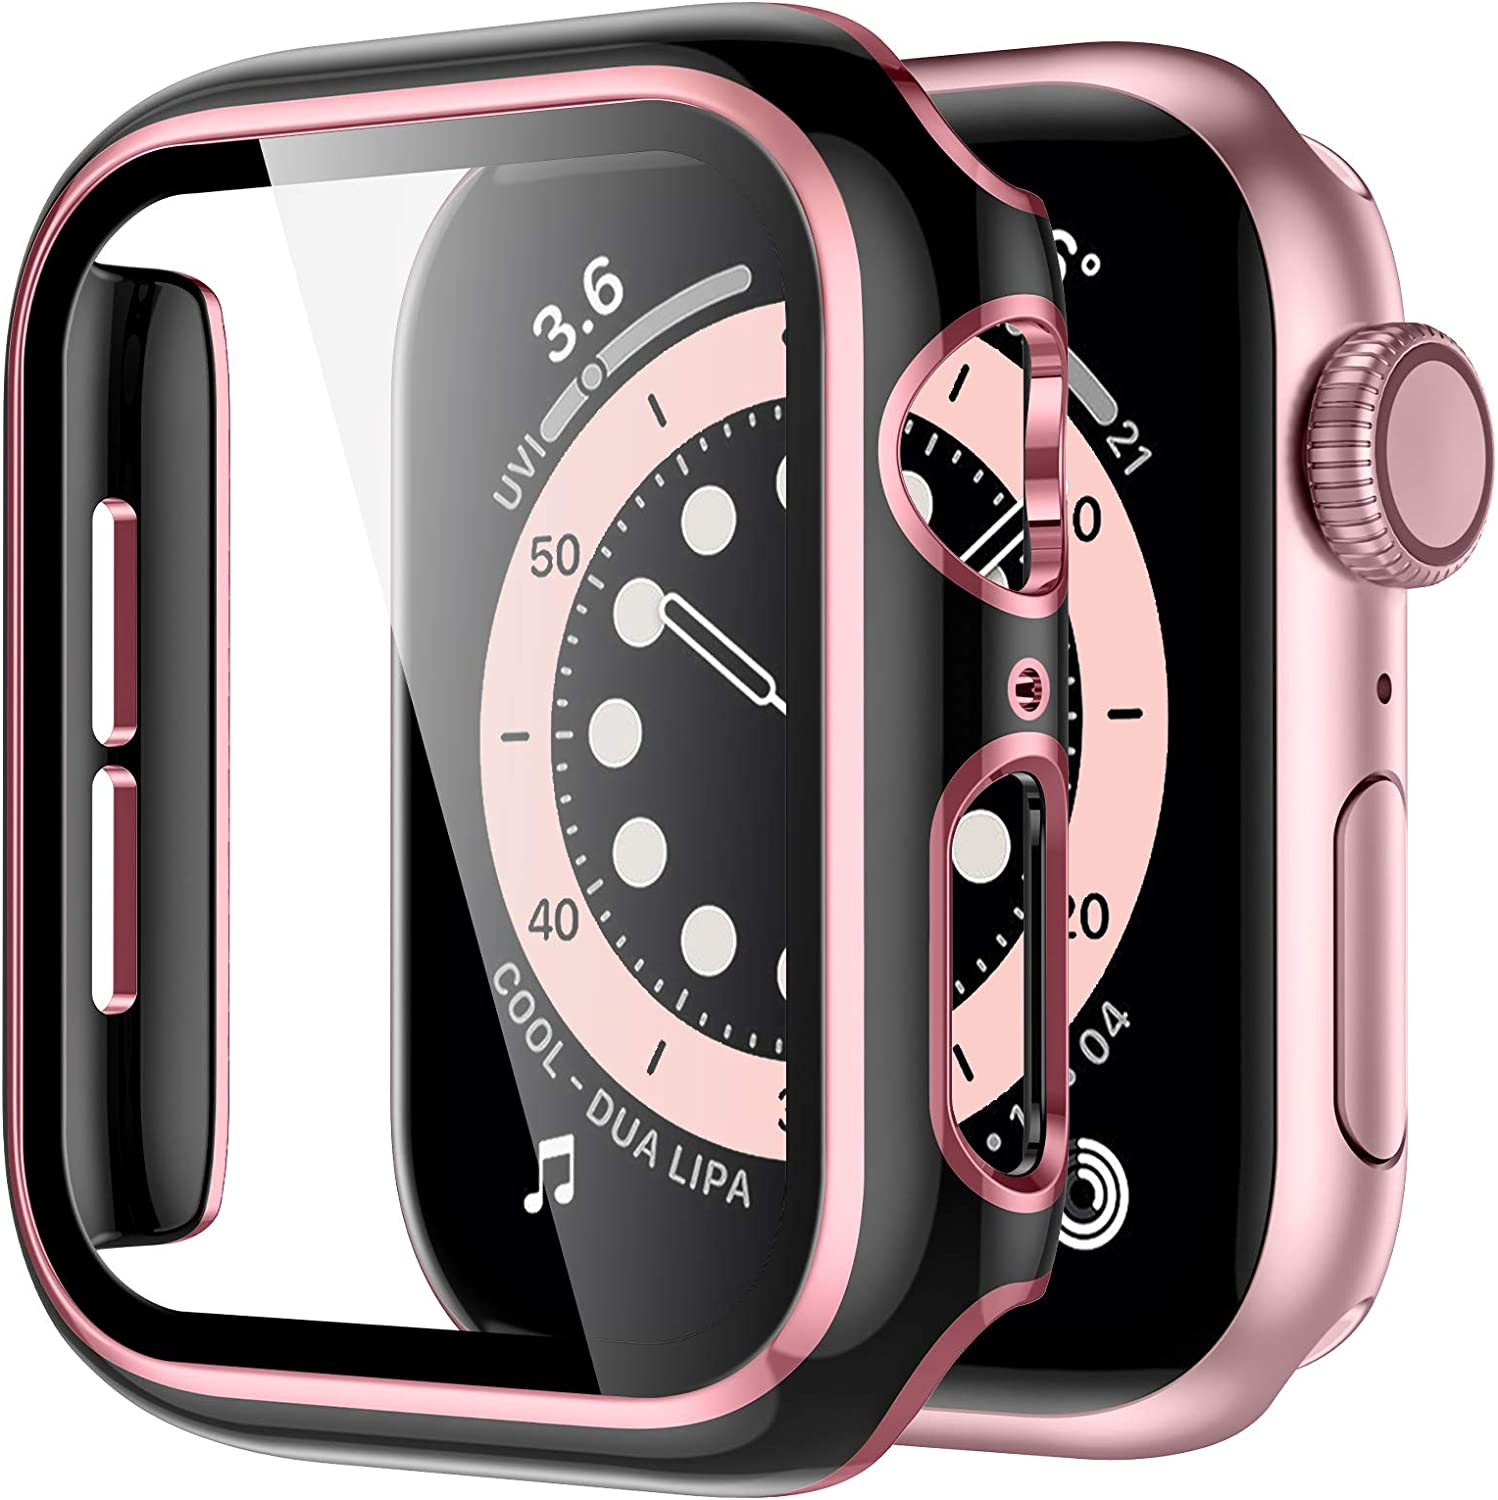 GEAK Compatible with Apple Watch 38mm Screen Protector, Full Coverage Black Bumper Protective Case Pink Edge with Screen Protector for iWatch Series 3/2/1 Women Men Black/Rose Pink